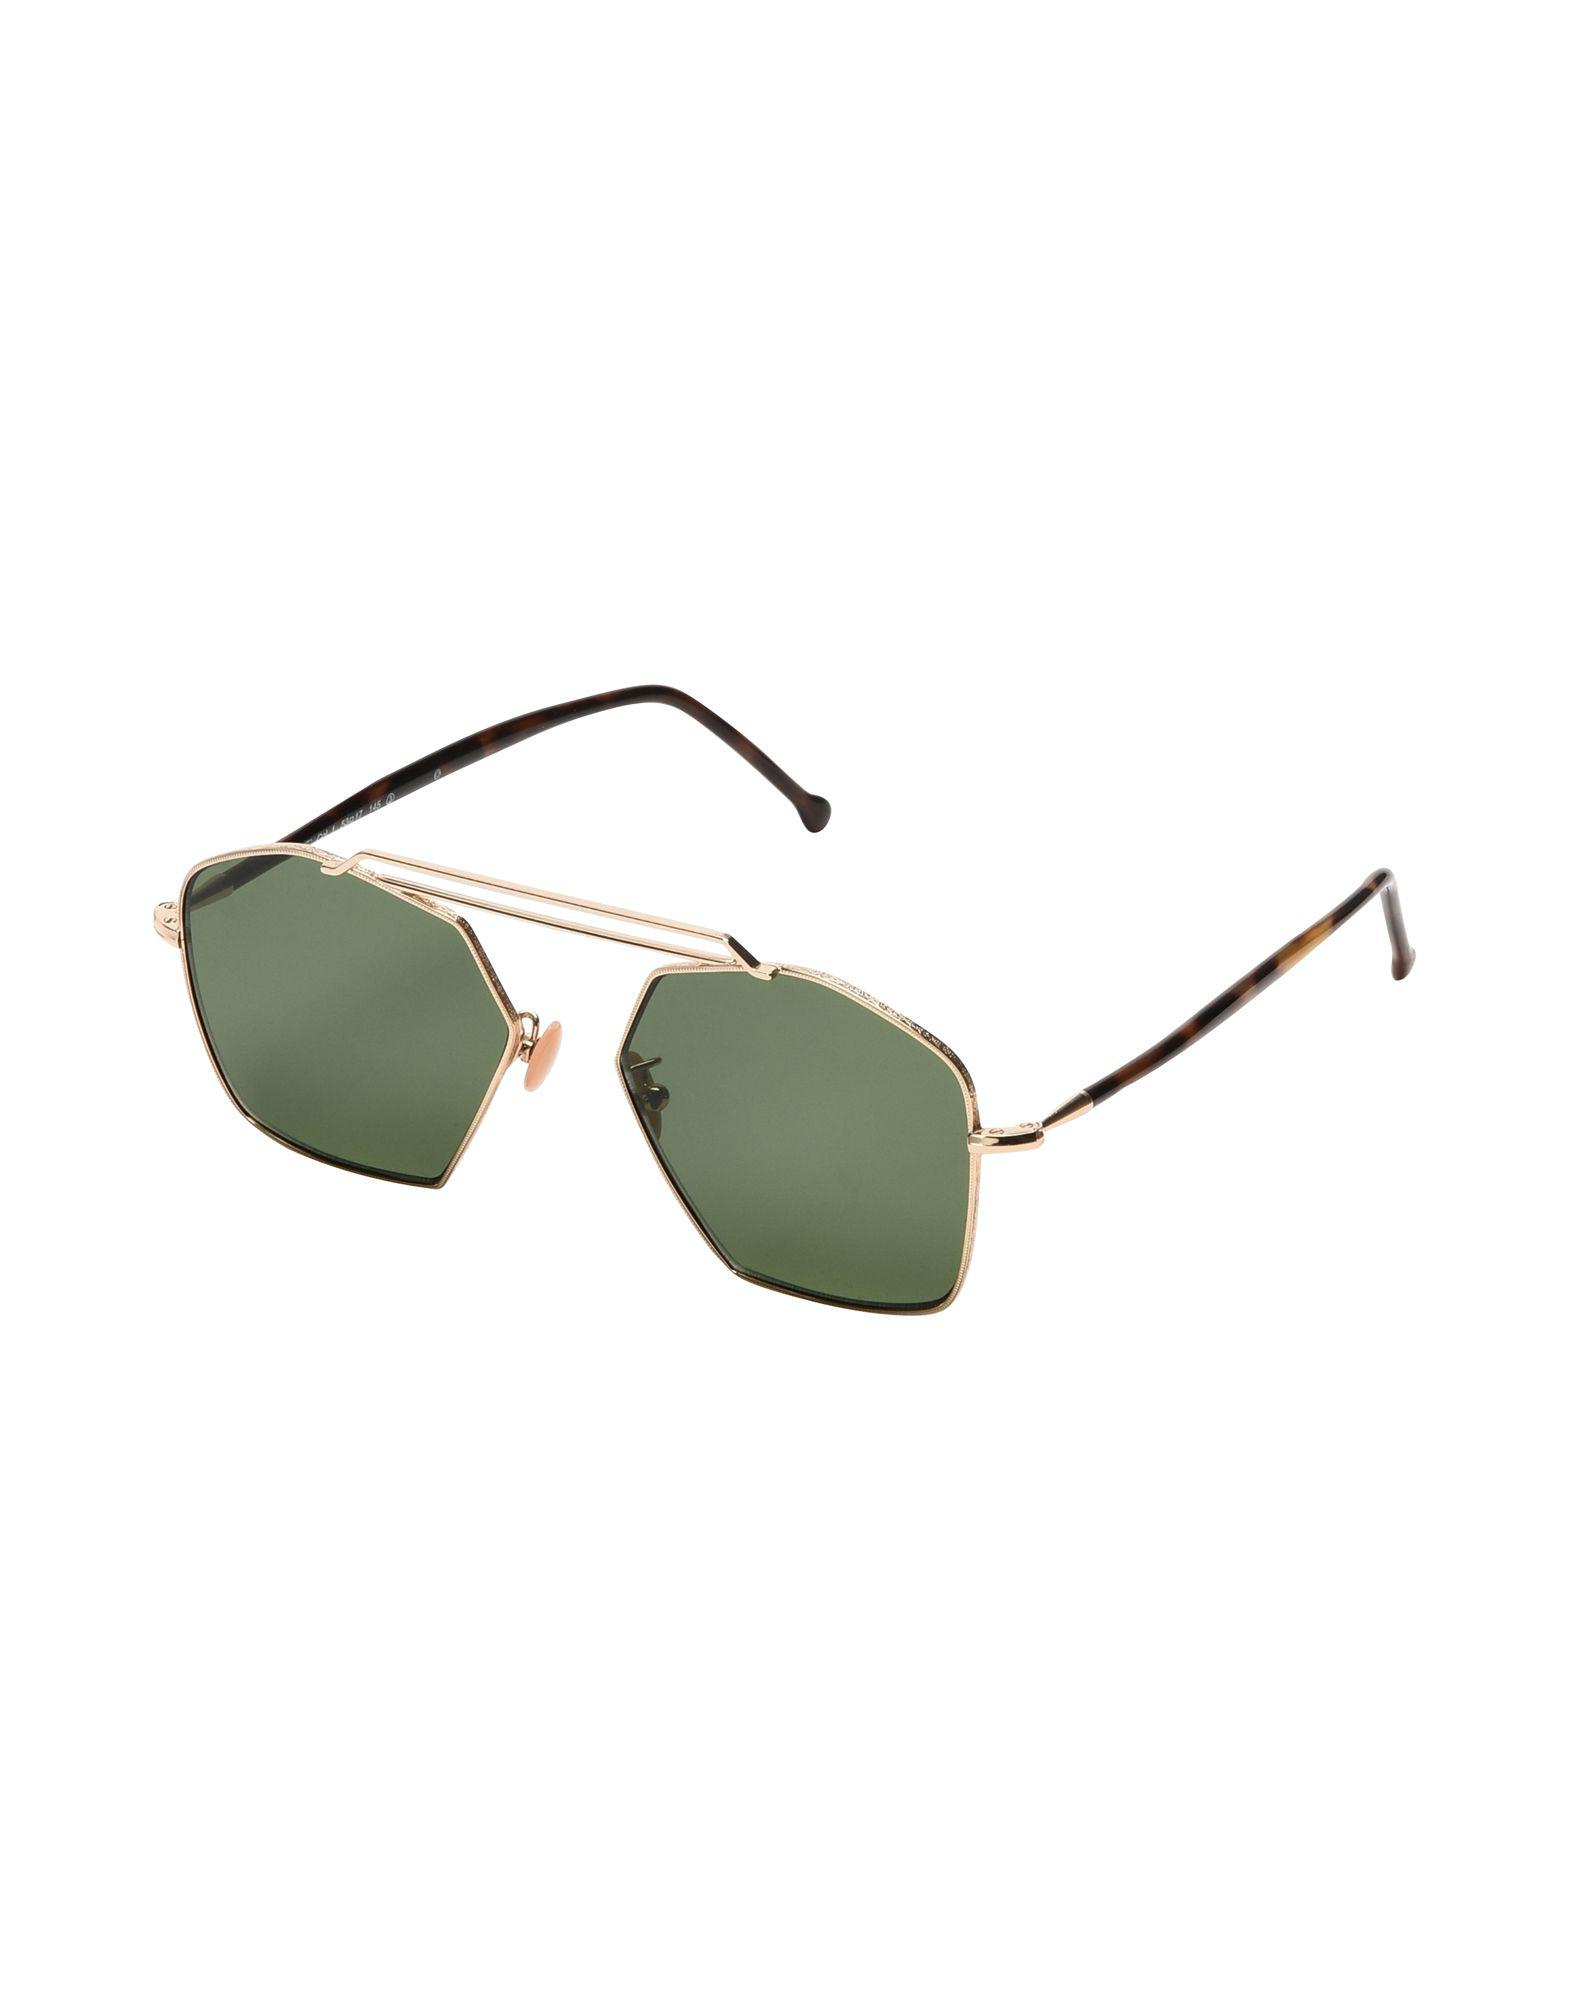 643ad1d262c23 Kyme Sunglasses in Metallic - Lyst